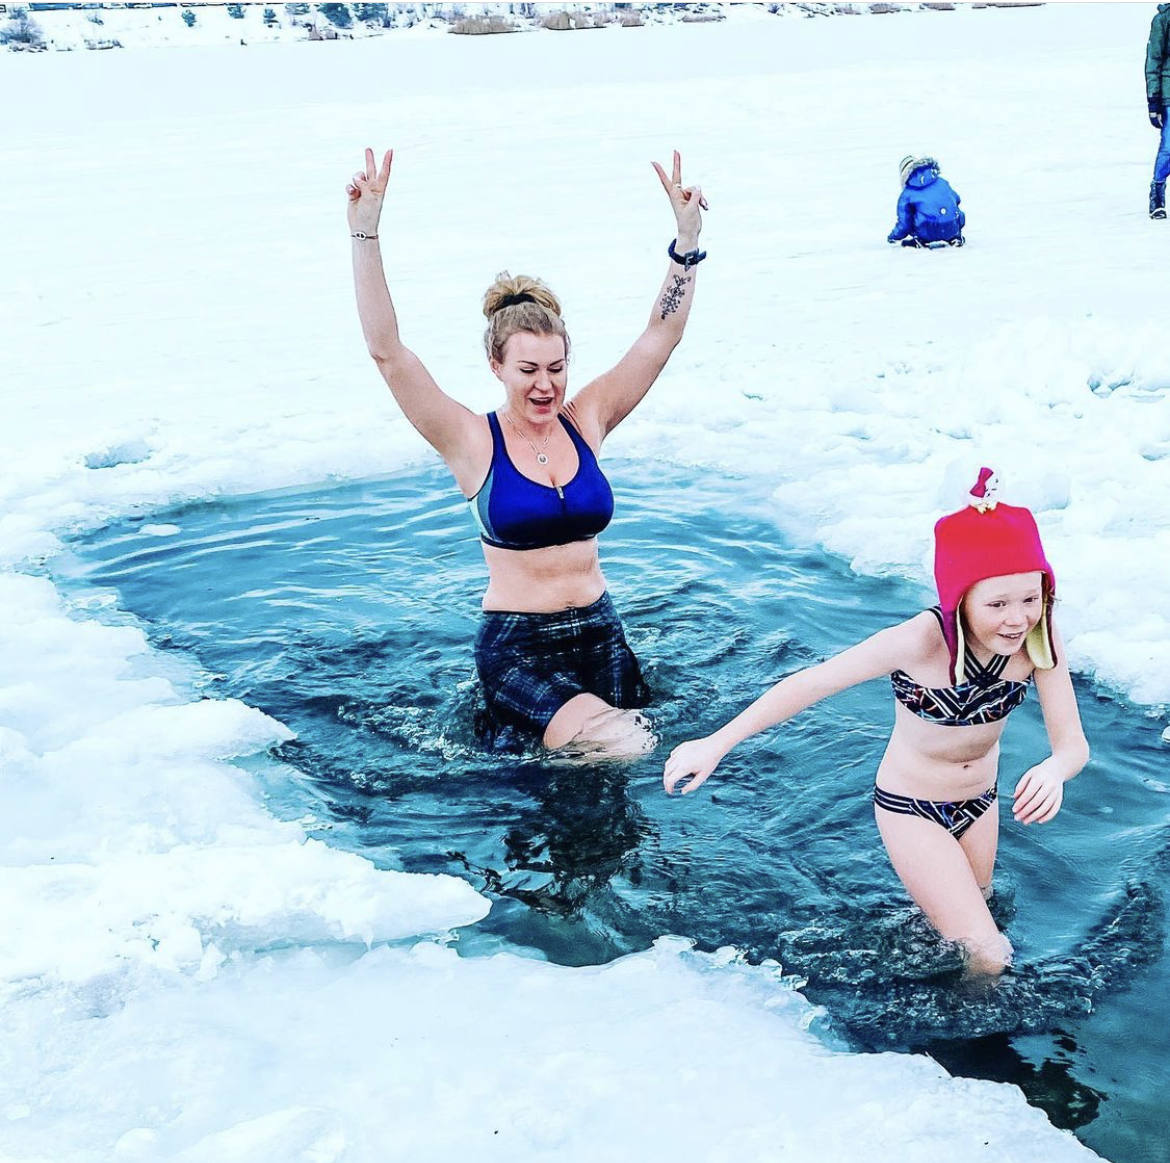 Samantha wearing a Bolder skirt in an ice hole with her child